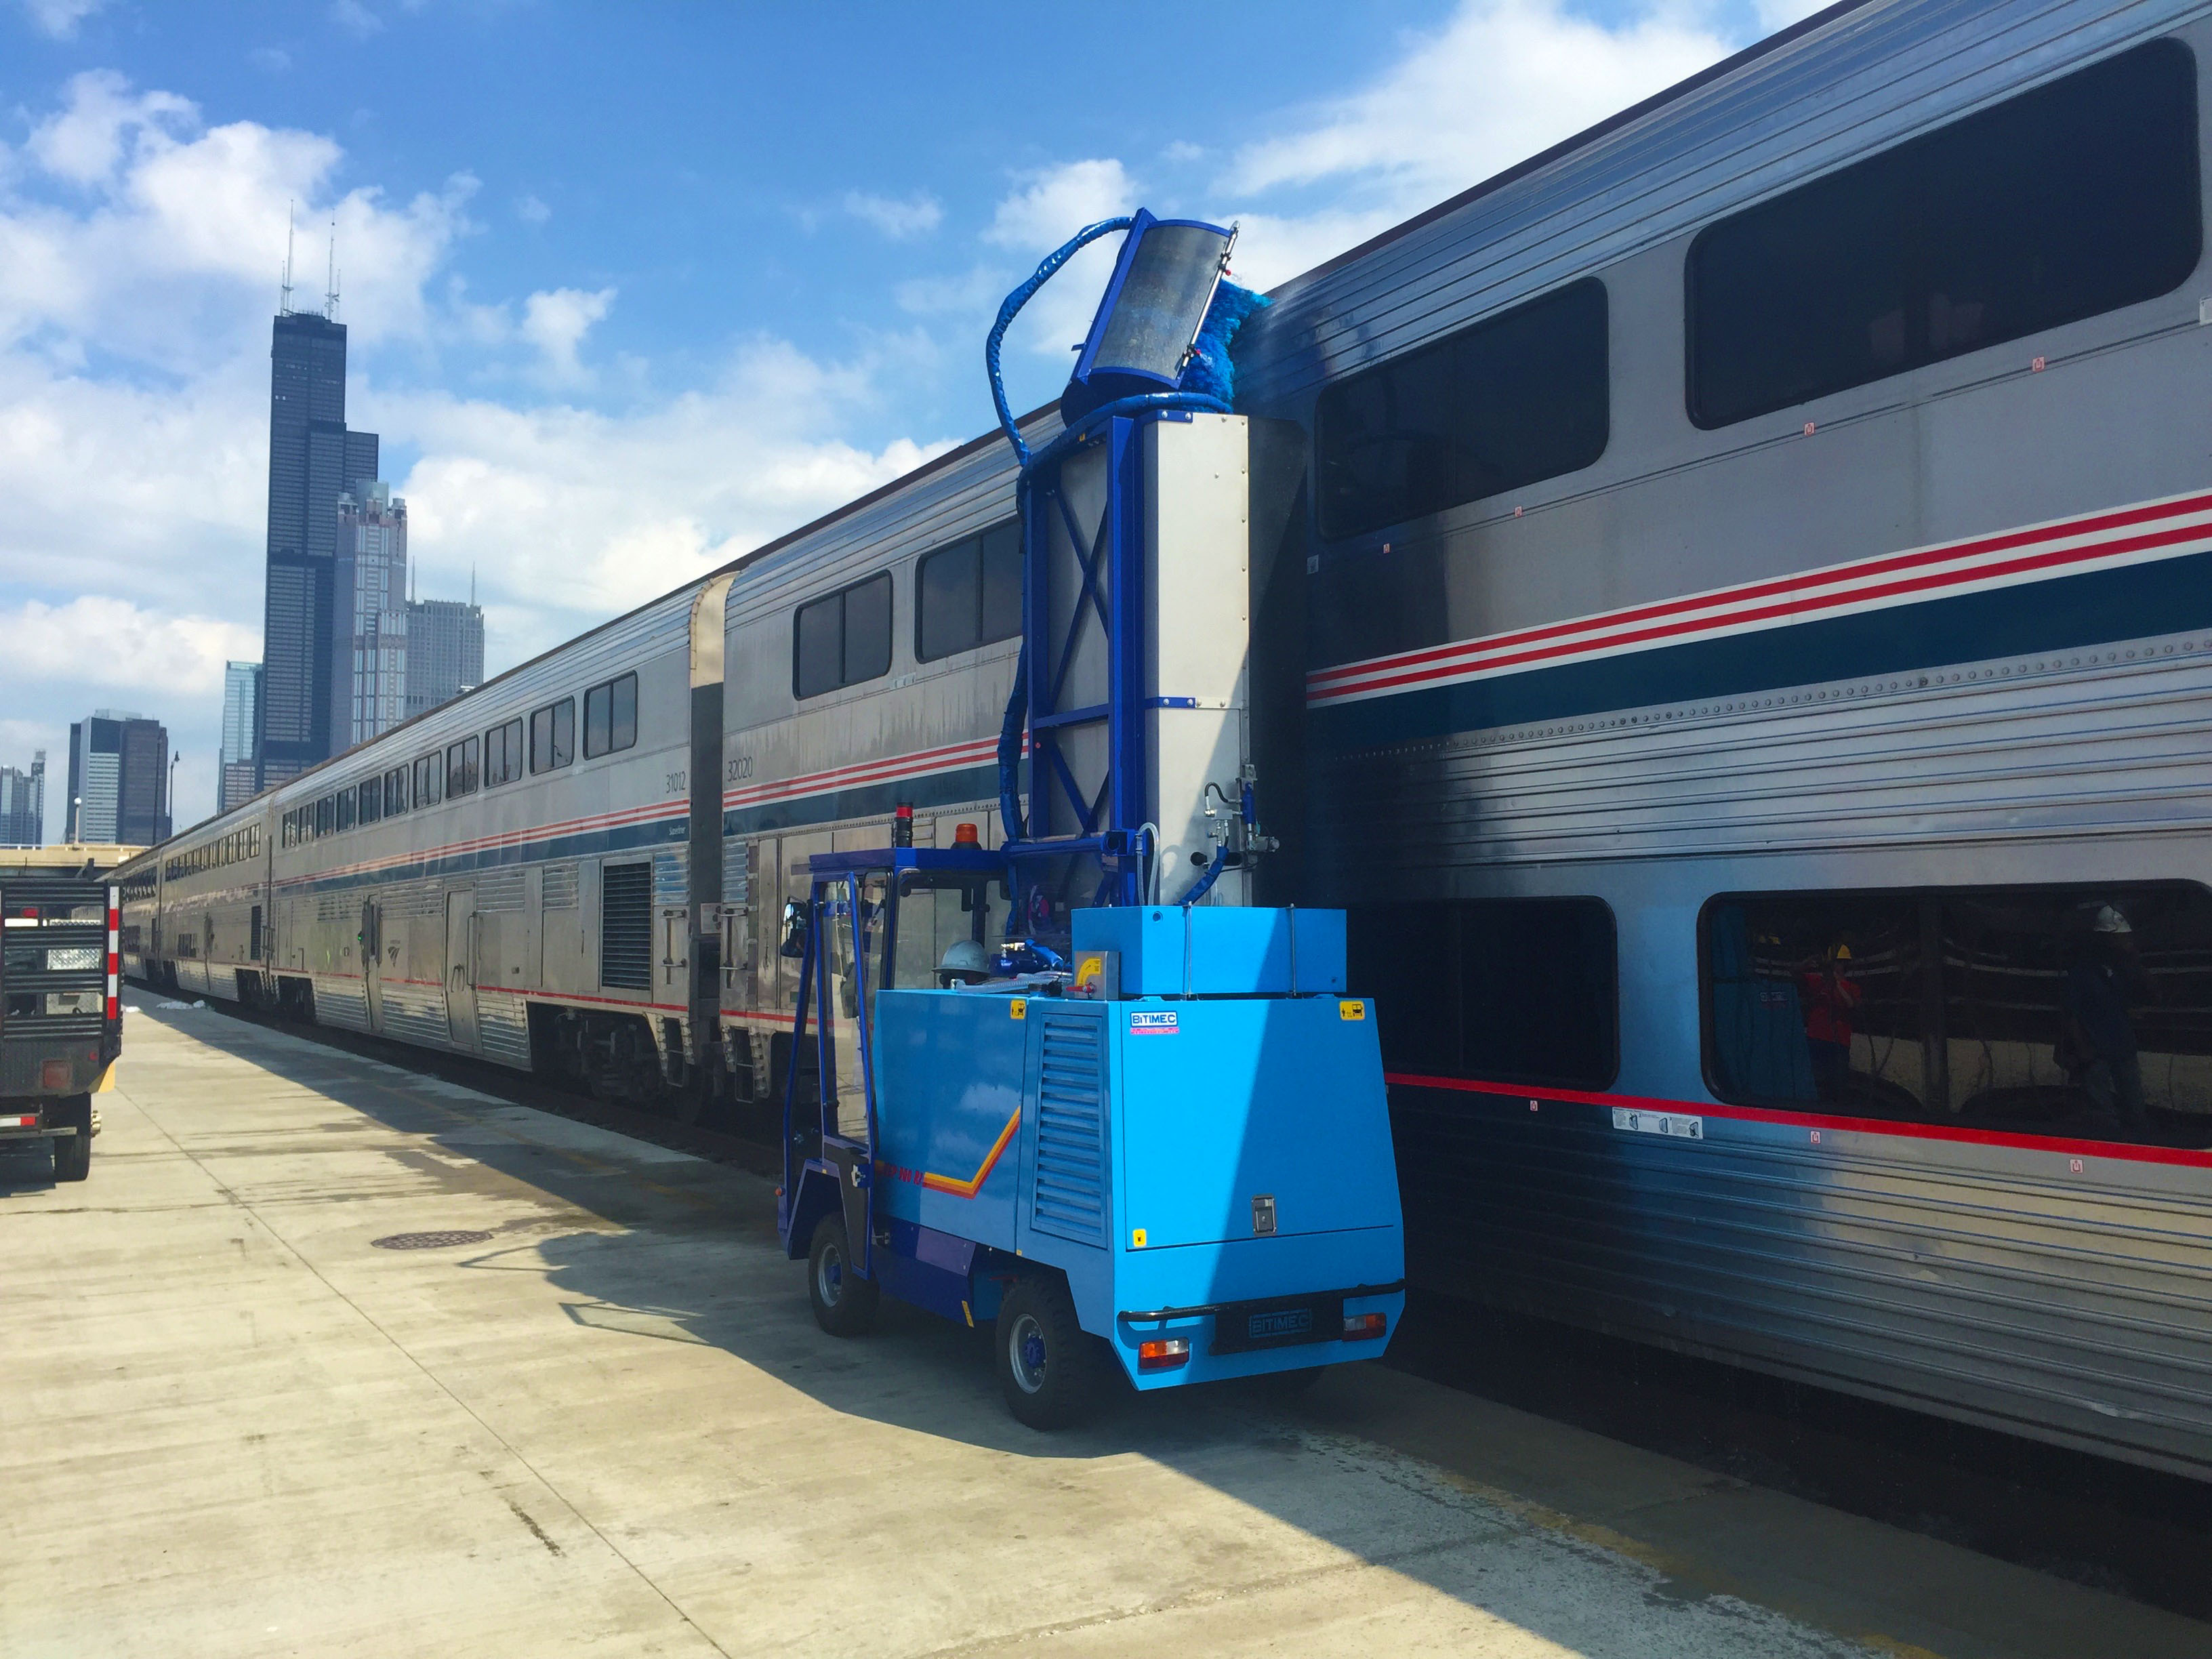 Washing bots for light rail, bullet trains and railcars